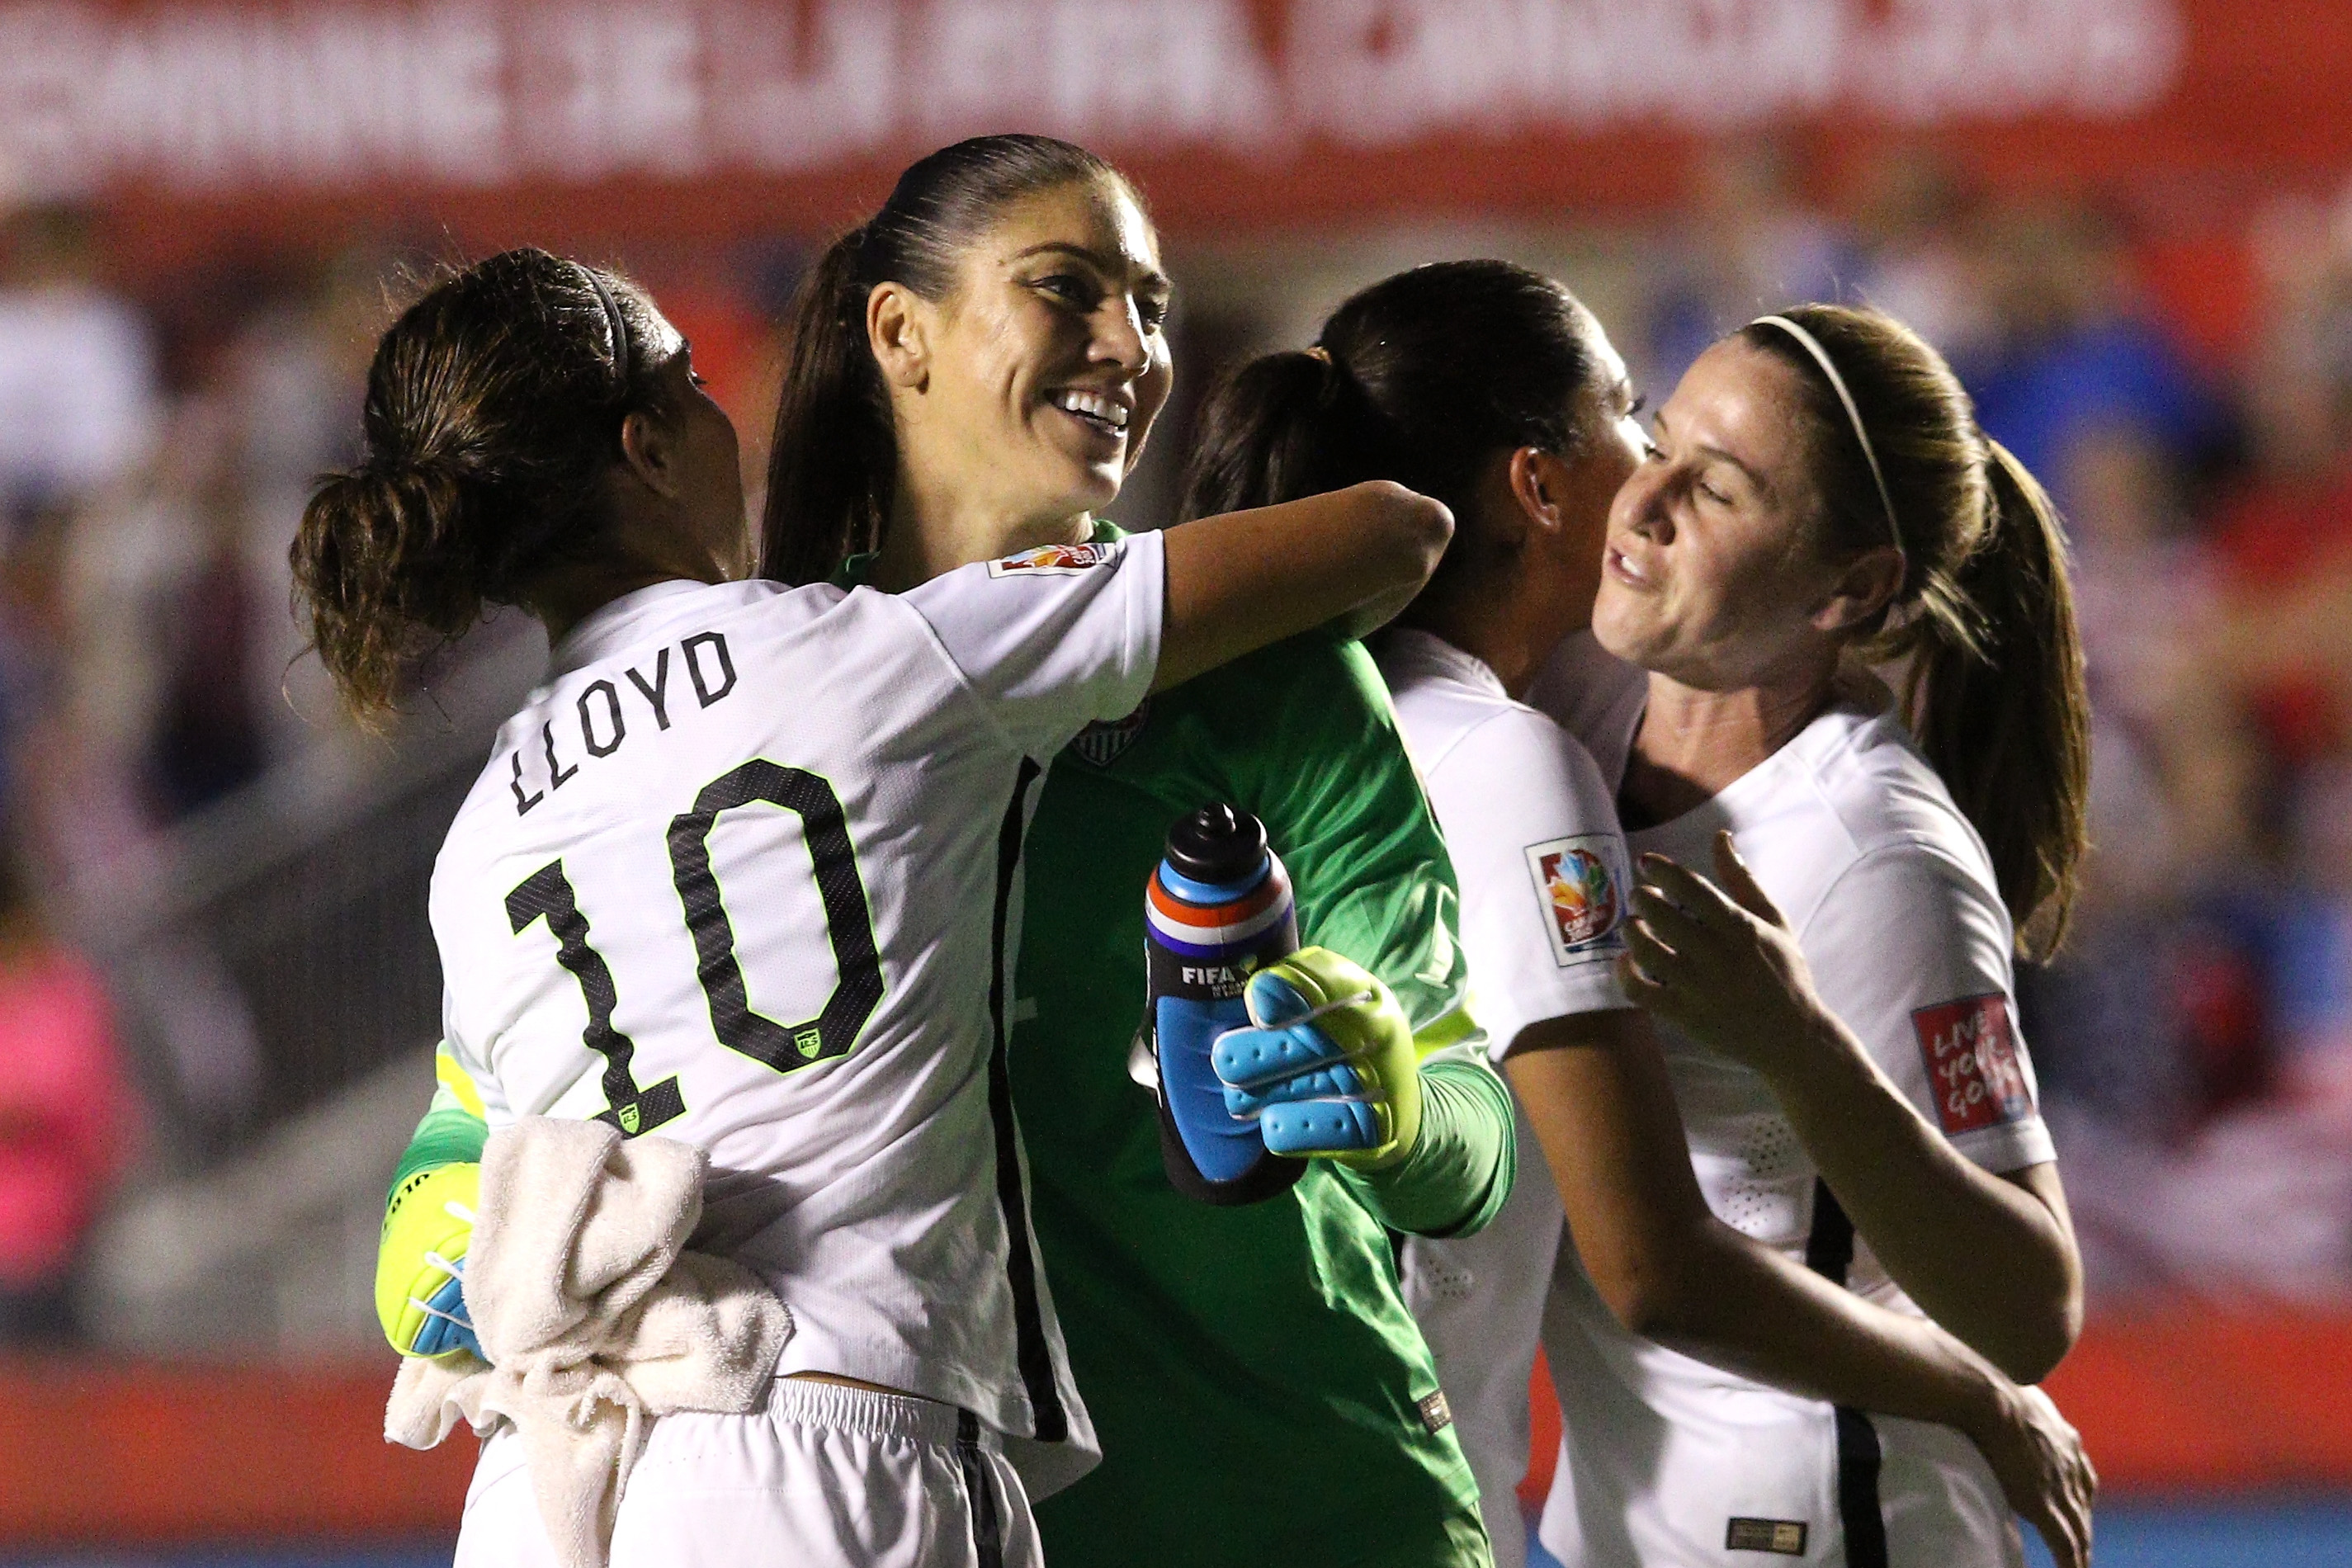 in the FIFA Women's World Cup 2015 Quarter Final match at Lansdowne Stadium on June 26, 2015 in Ottawa, Canada.